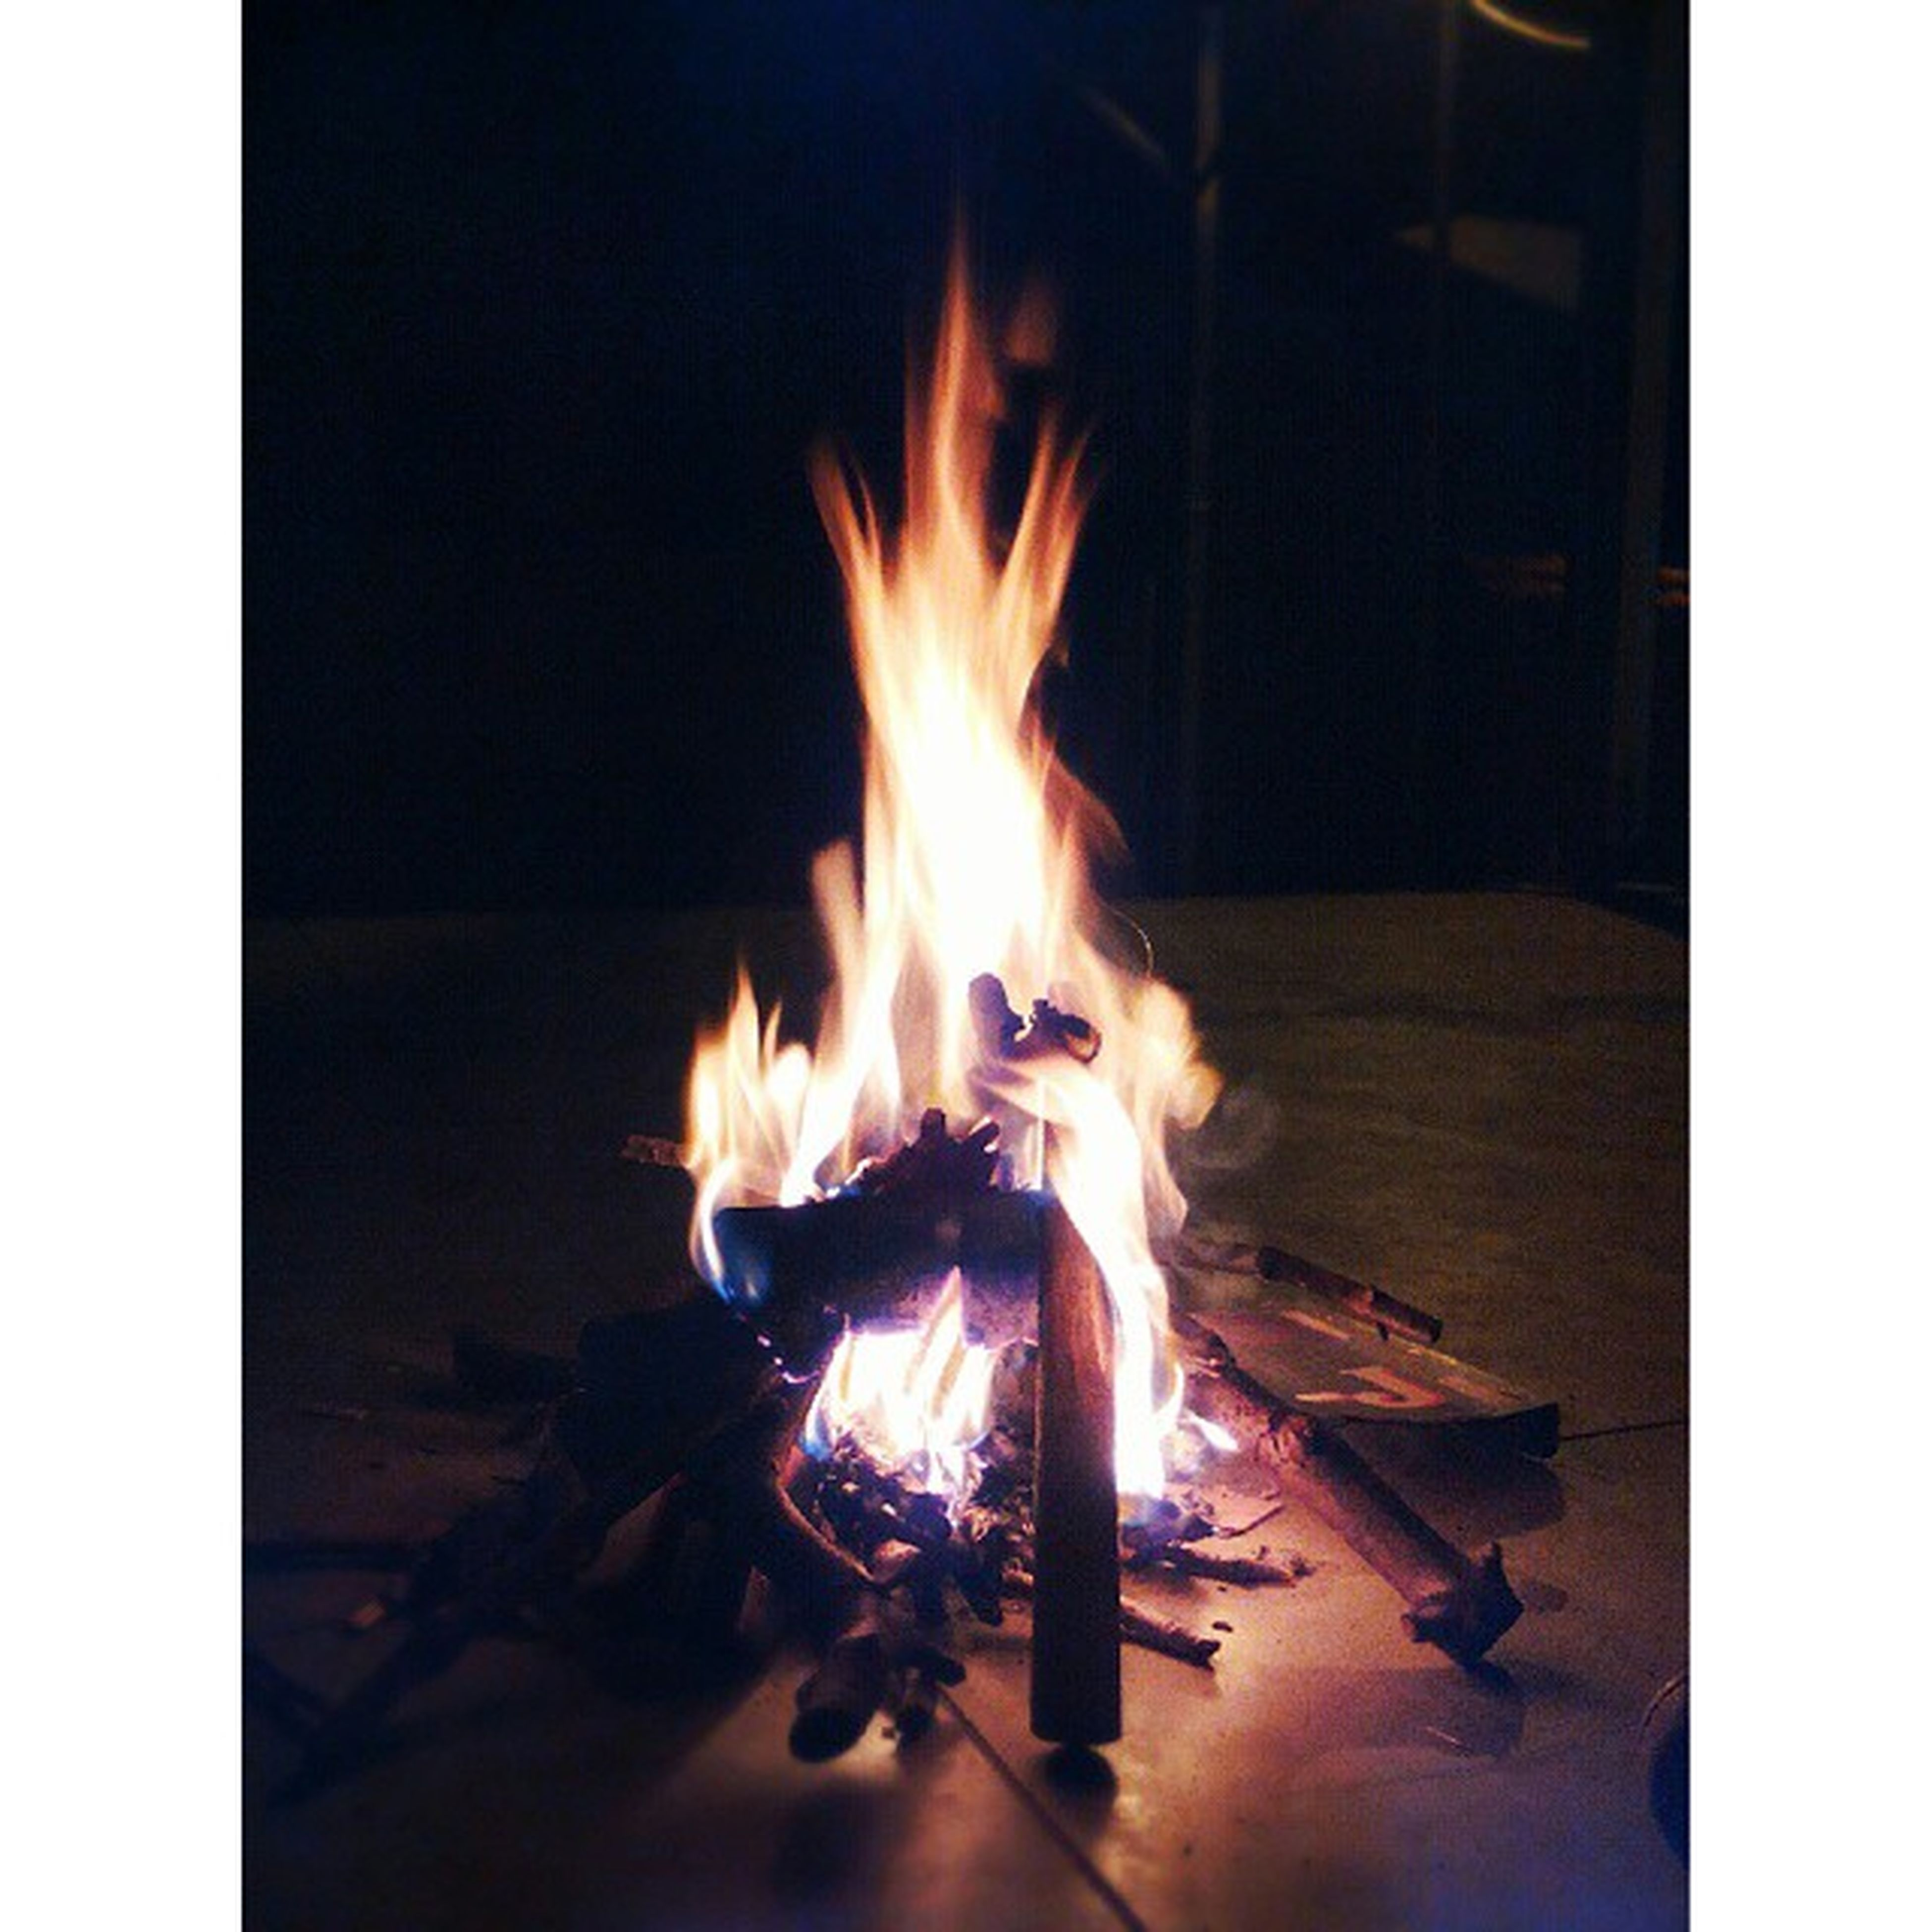 flame, burning, fire - natural phenomenon, heat - temperature, bonfire, transfer print, fire, firewood, heat, glowing, campfire, night, auto post production filter, orange color, indoors, wood - material, dark, illuminated, motion, fireplace